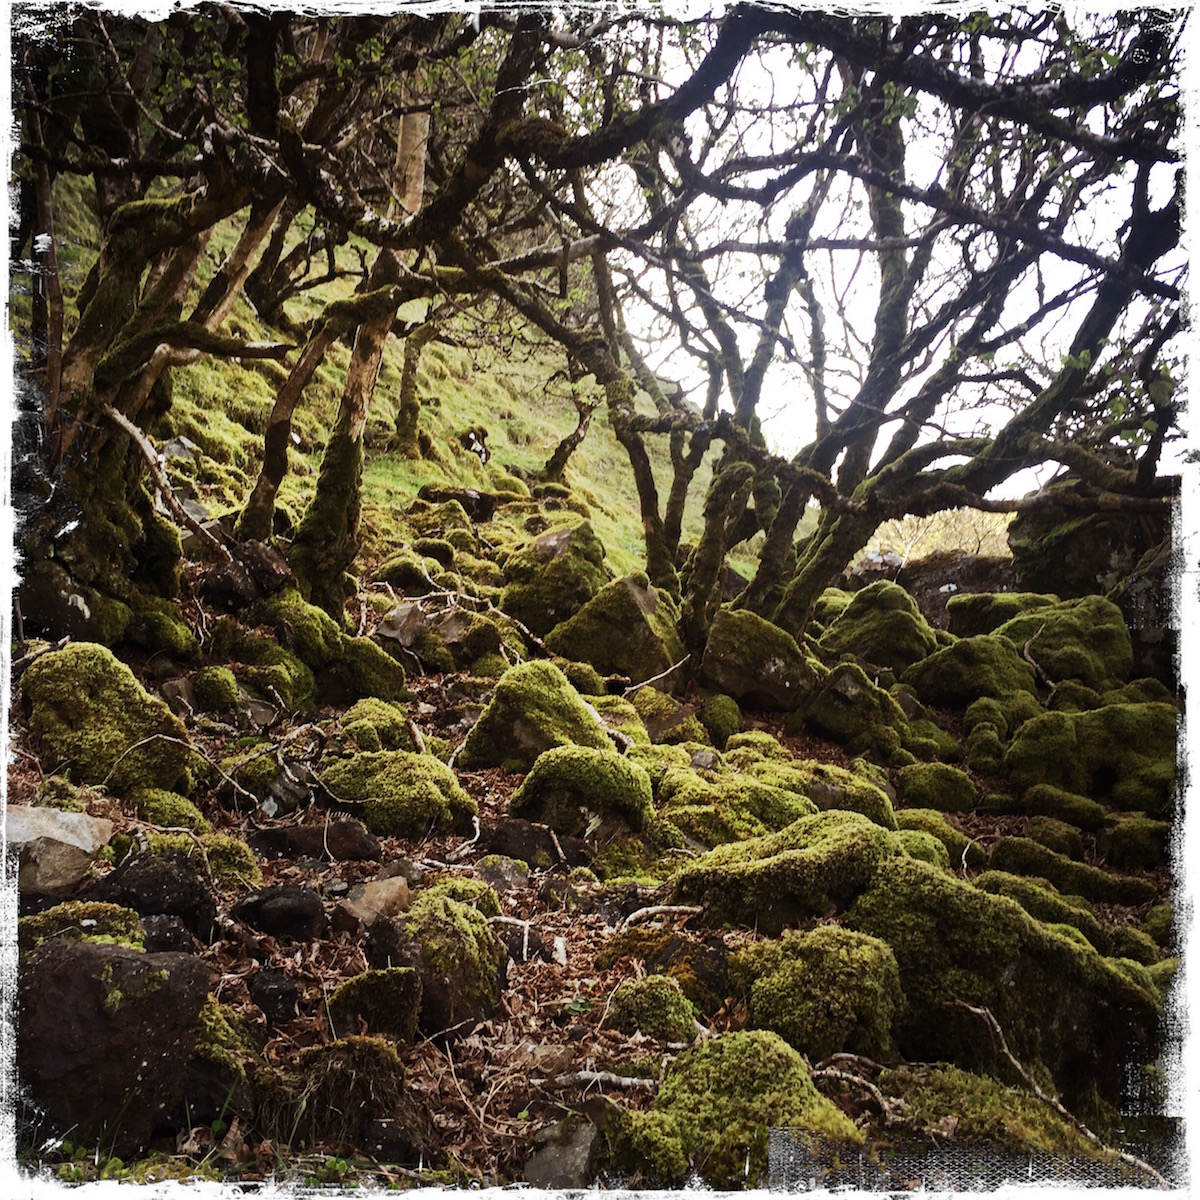 Forest at Fairy Glen, Isle of Skye, Scotland, photo by Barbara Sinclair